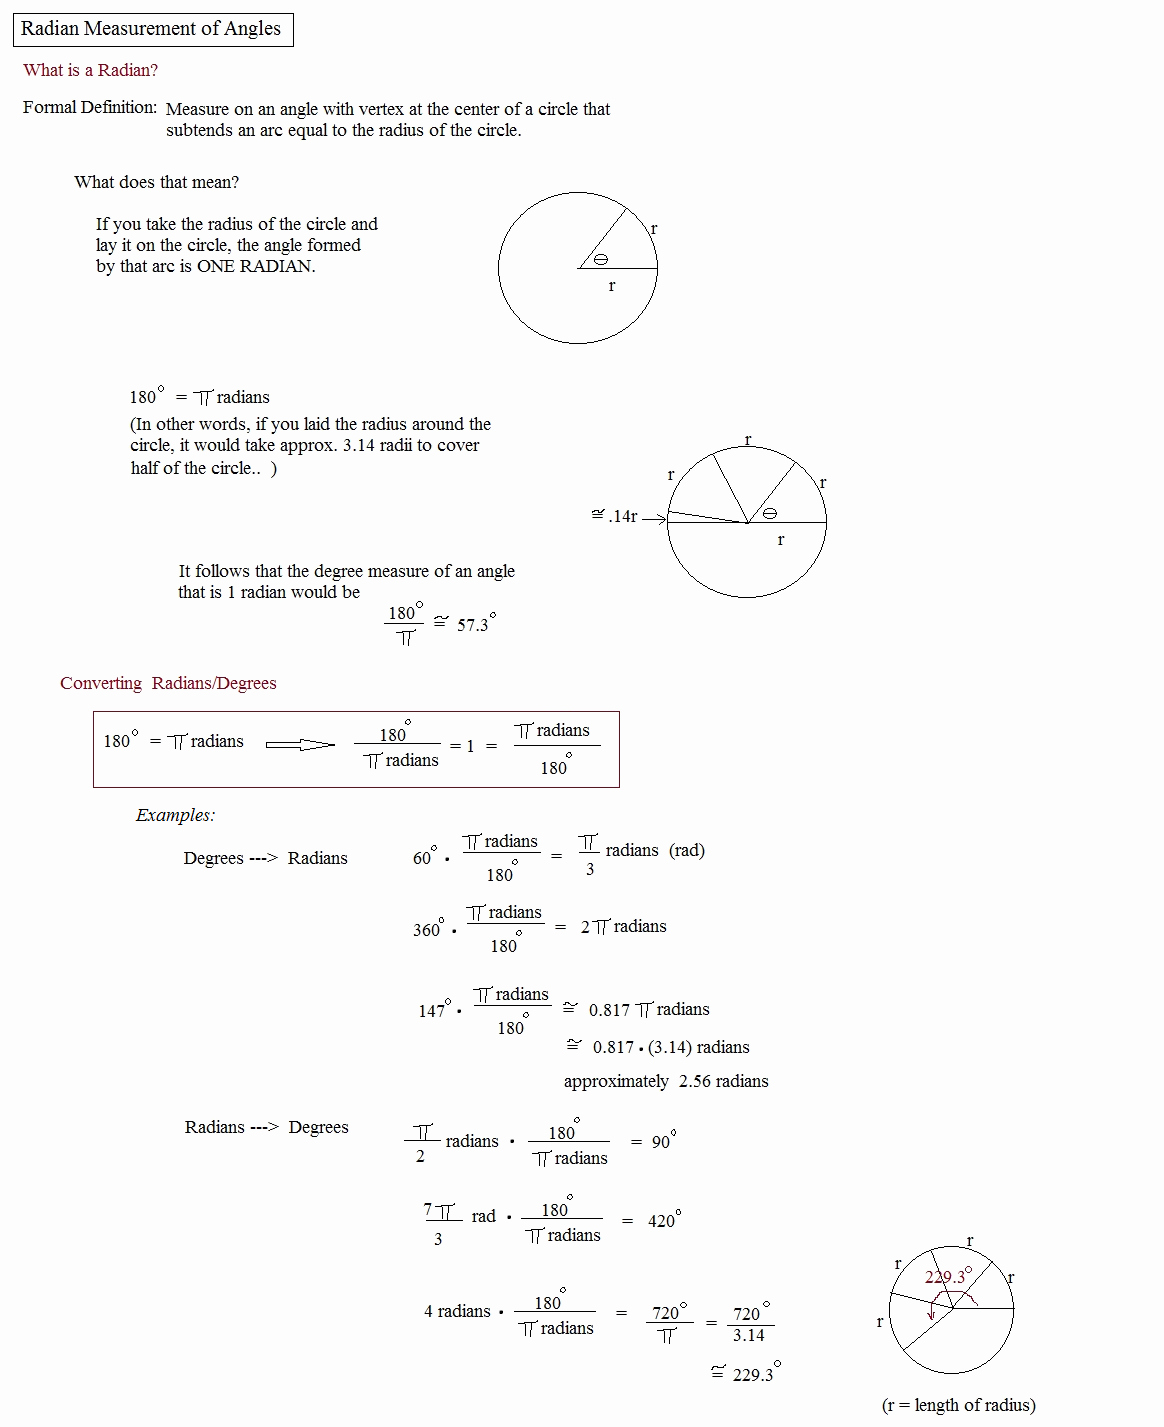 Radians to Degrees Worksheet Luxury Math Plane Angle Measurement